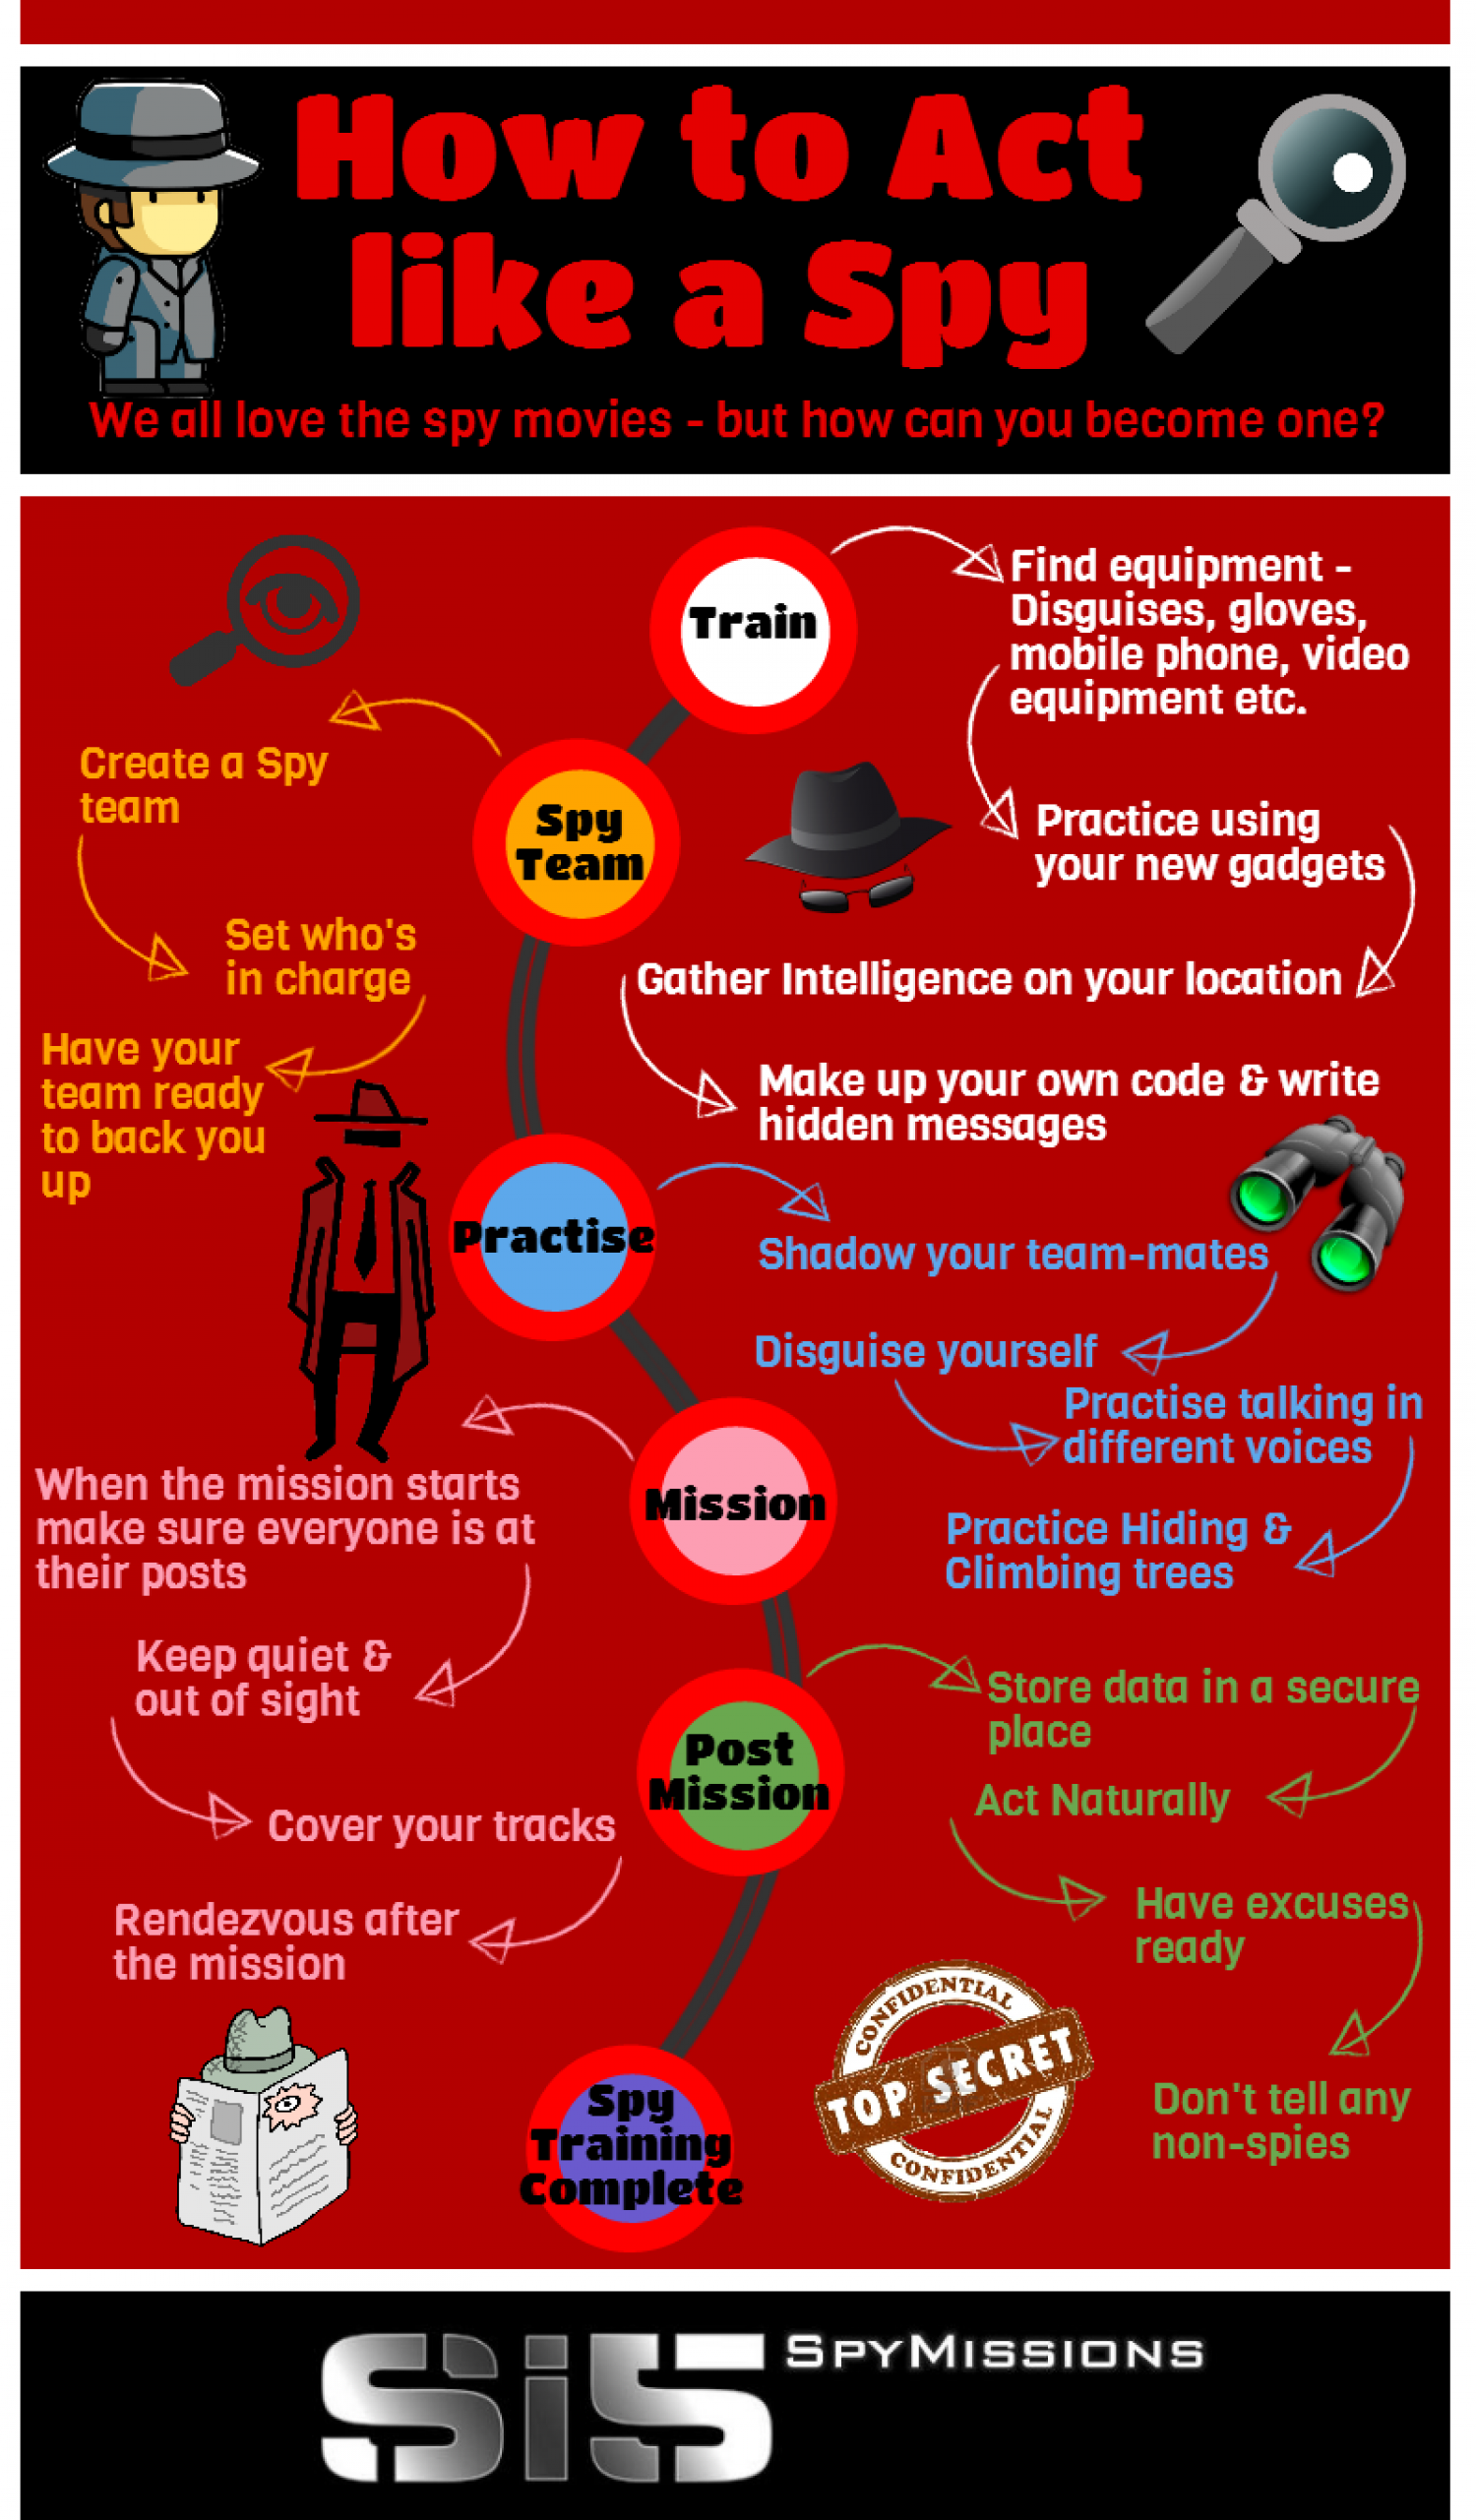 How to Act Like a Spy Infographic